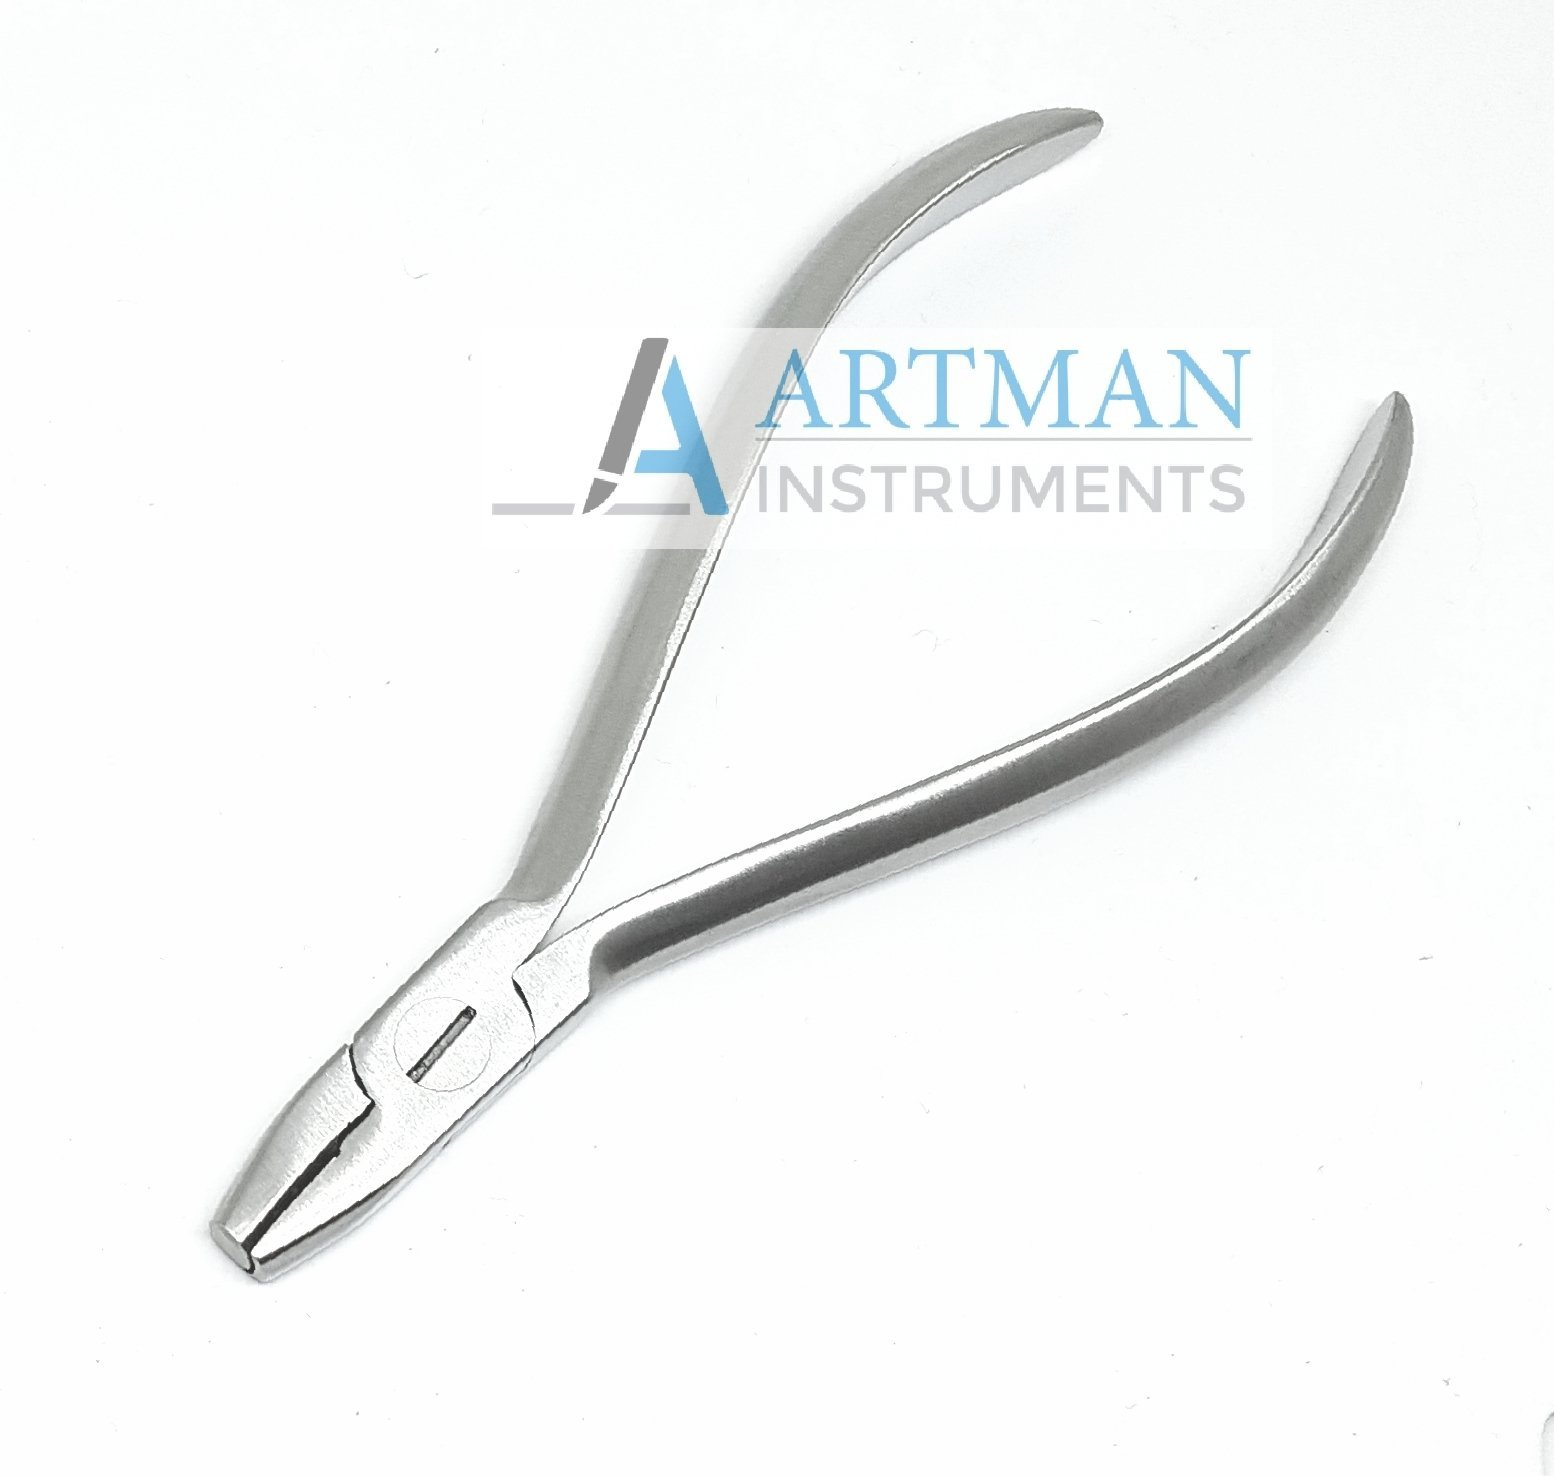 De la rosa pliers with grooves Hollow Chop contouring pliers Arch forming pliers Wire contouring pliers Orthodontic dental by wise linkers USA